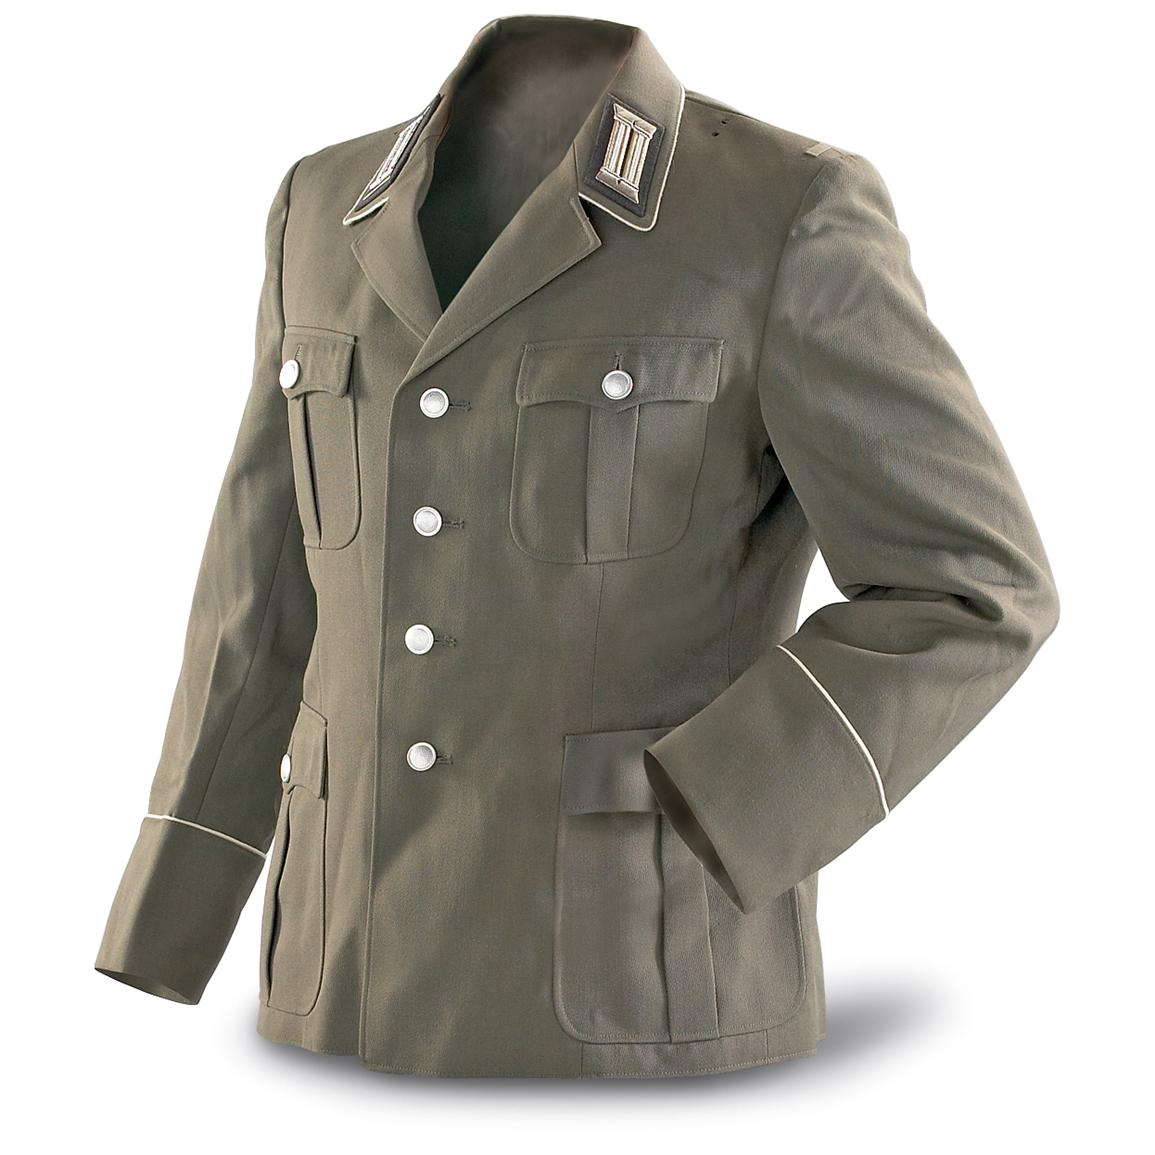 military jacket east german military surplus officeru0027s dress jacket, ... bxcbain